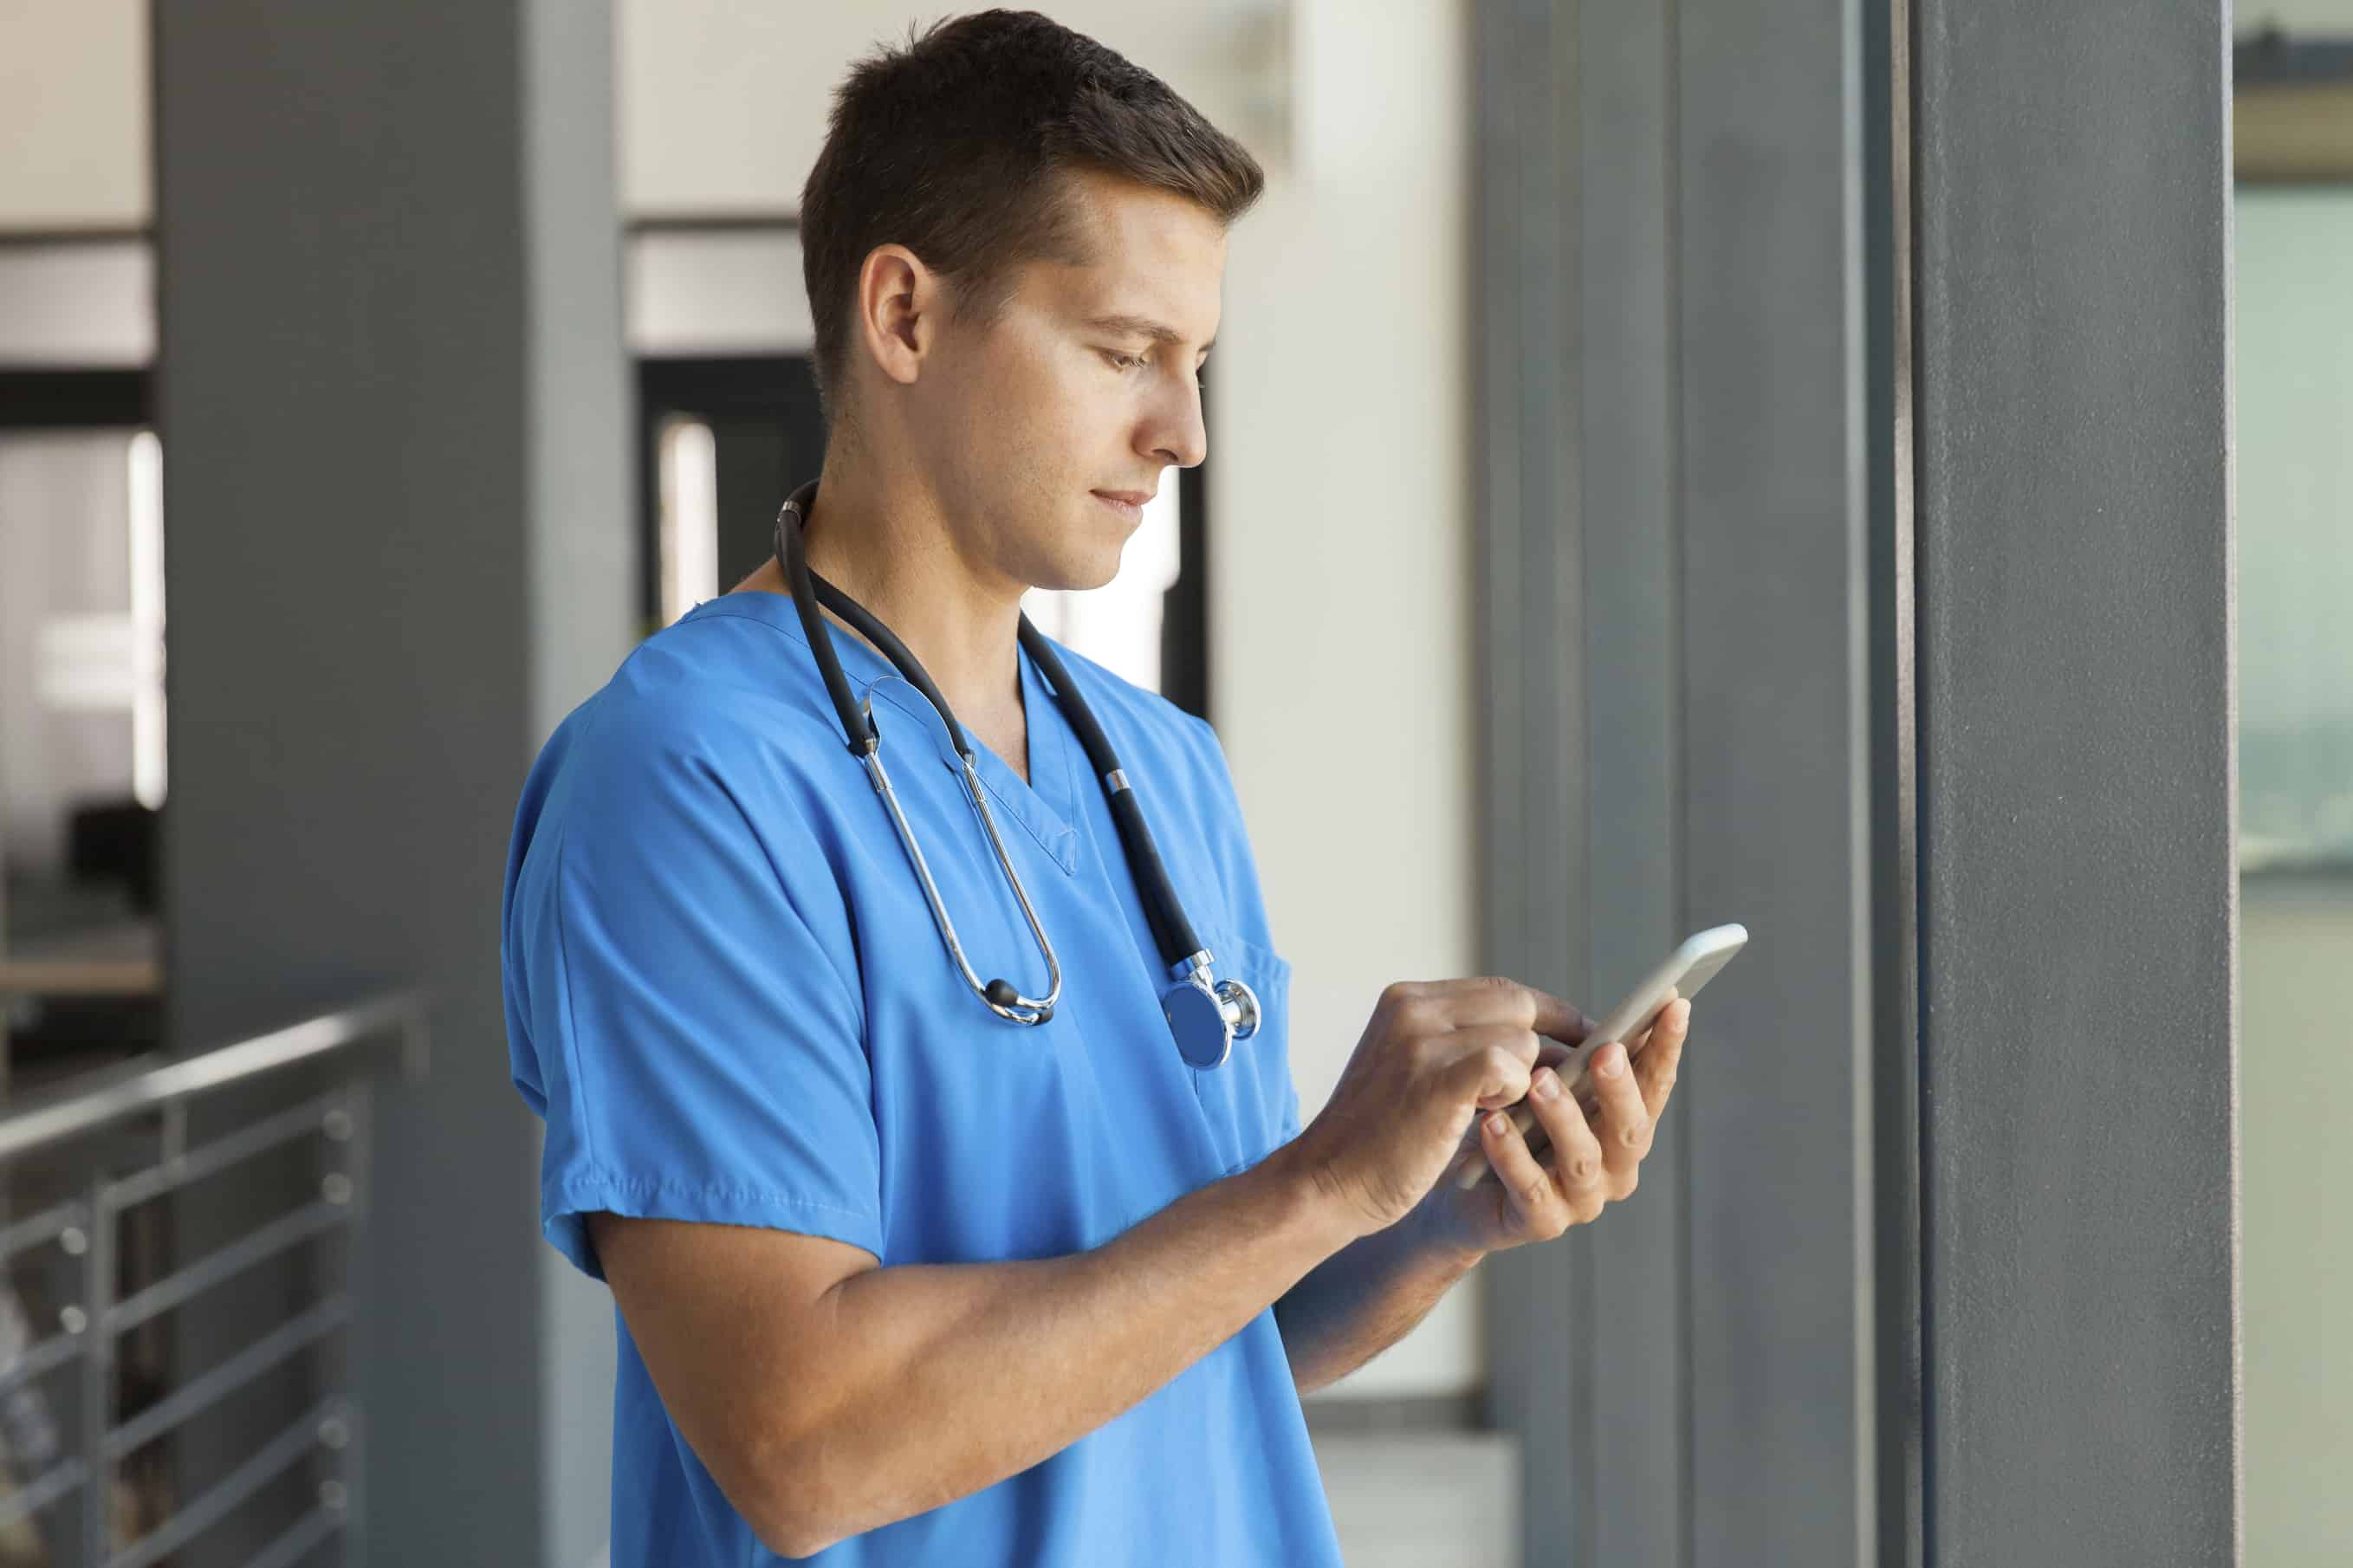 Six Ways to Use Texting to Provide Patient-Centered Care